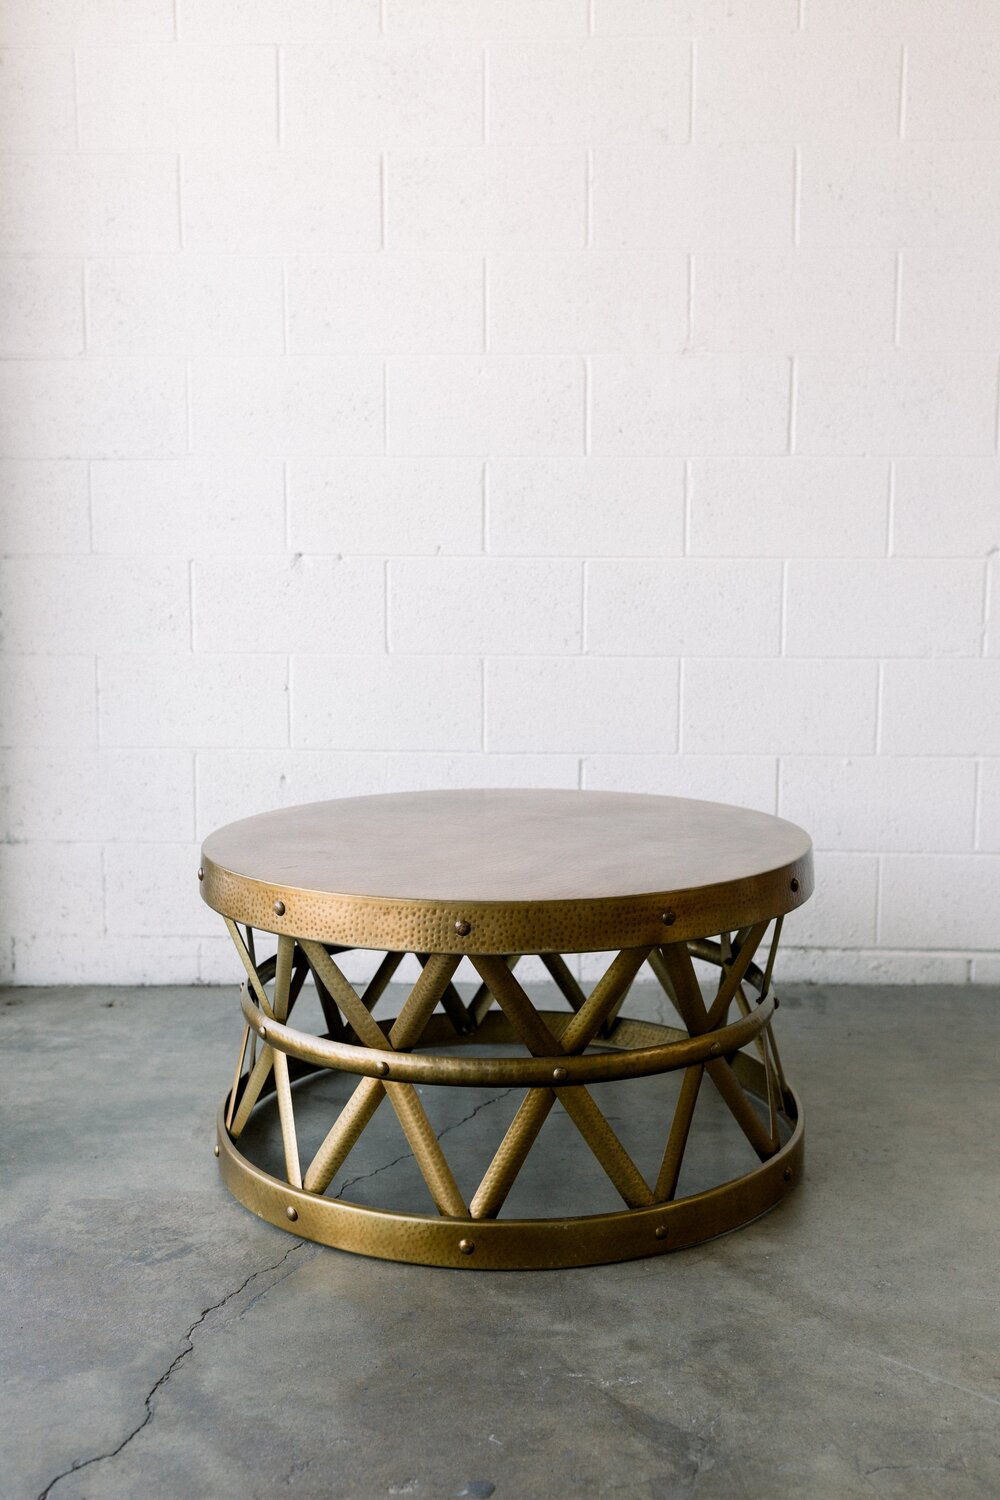 Saachi Brass Drum Coffee Table